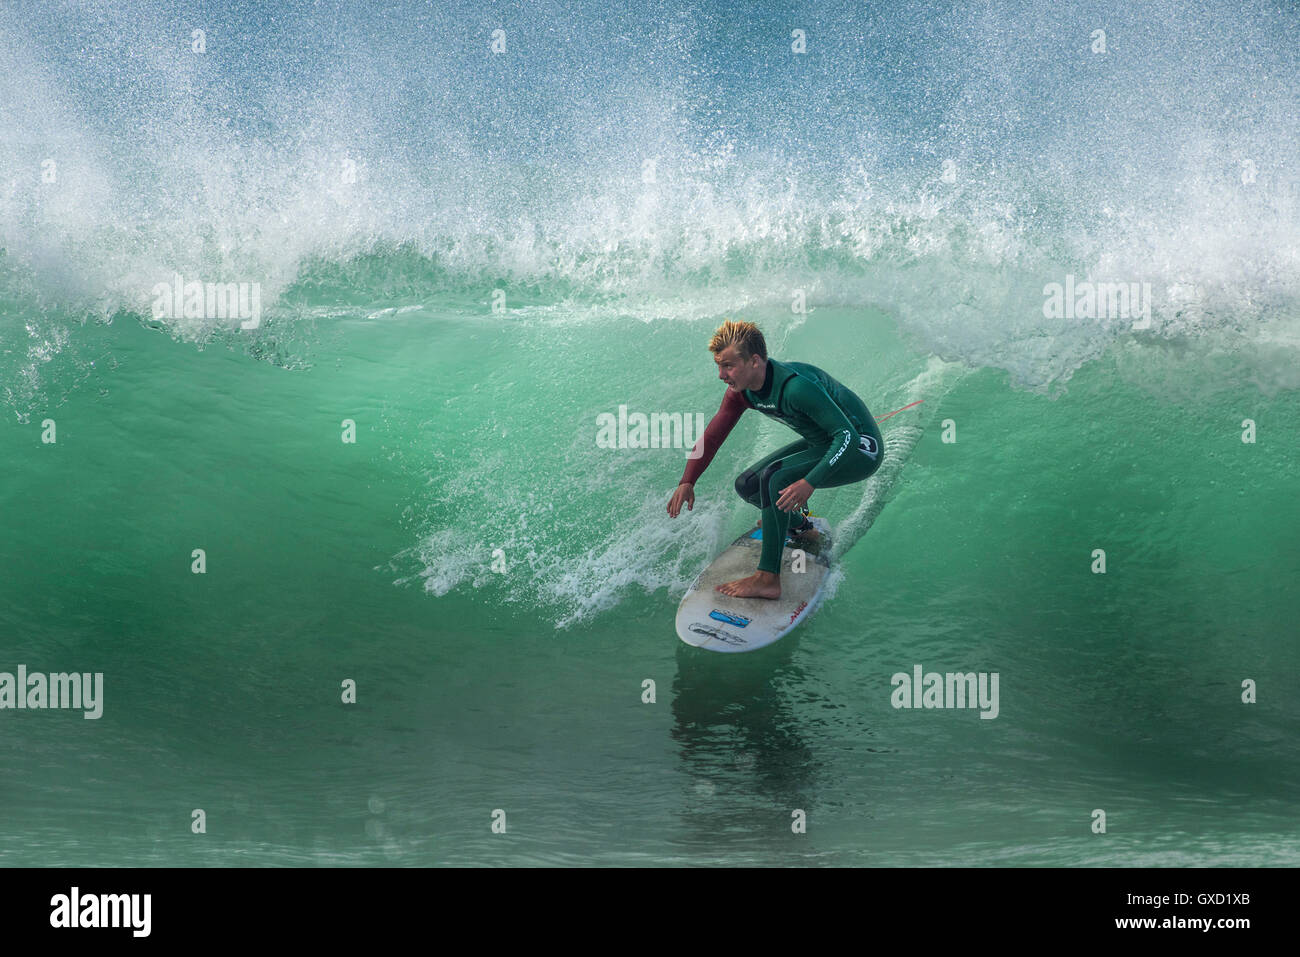 A surfer in spectacular action at Fistral in Newquay, Cornwall. UK. Stock Photo